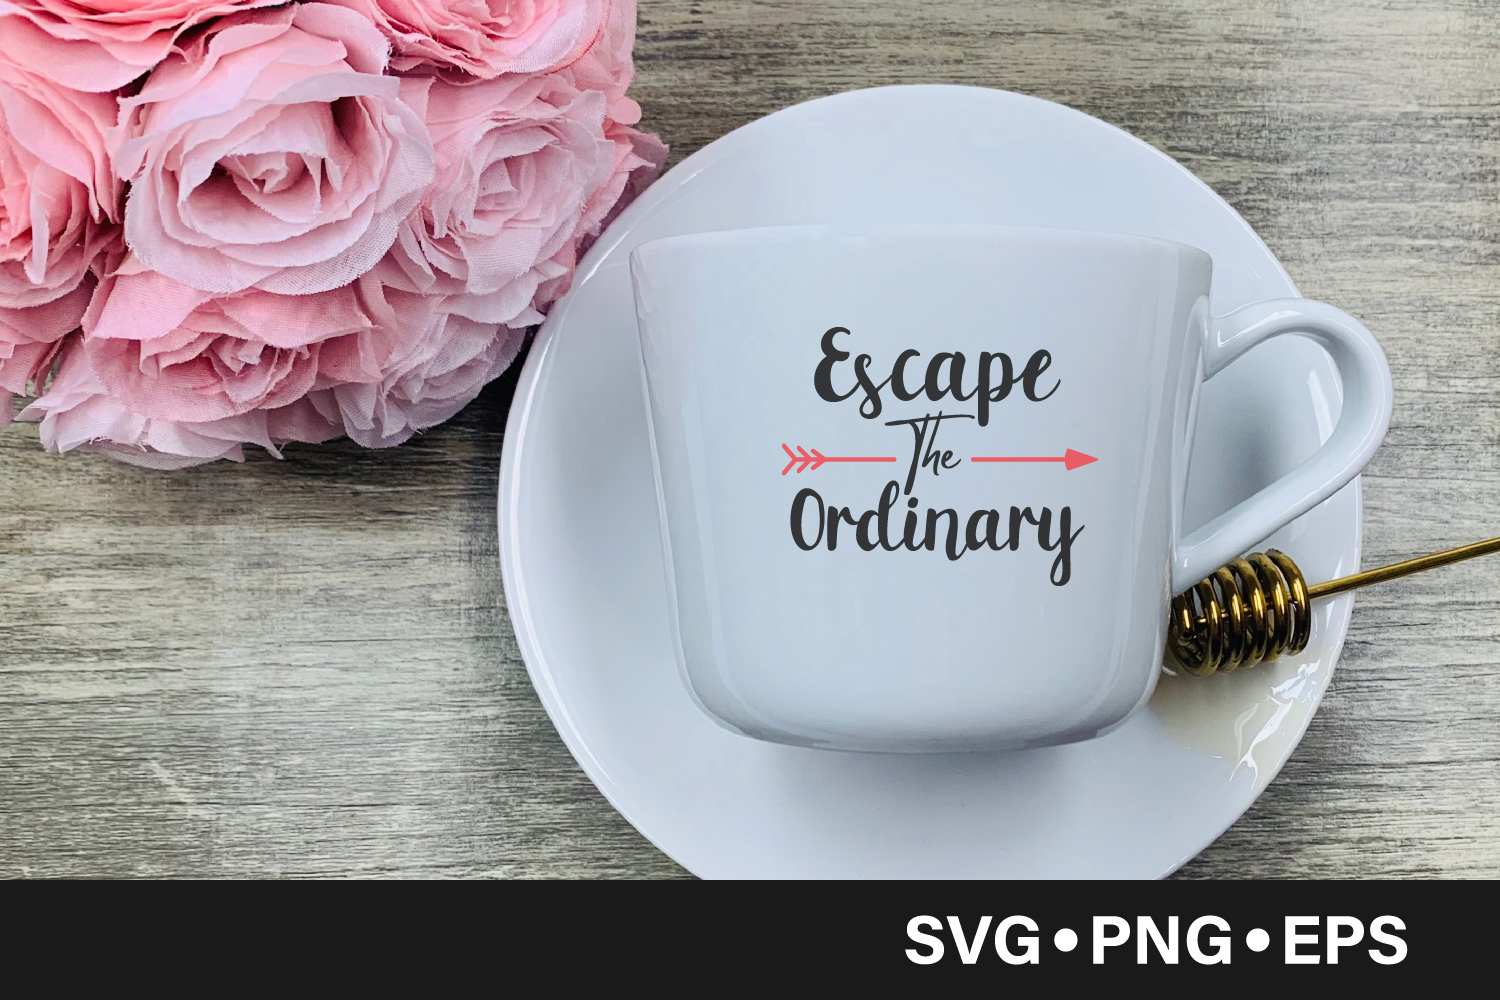 Download Free Escape The Ordinary Quote Graphic By Vectorbundles Creative for Cricut Explore, Silhouette and other cutting machines.